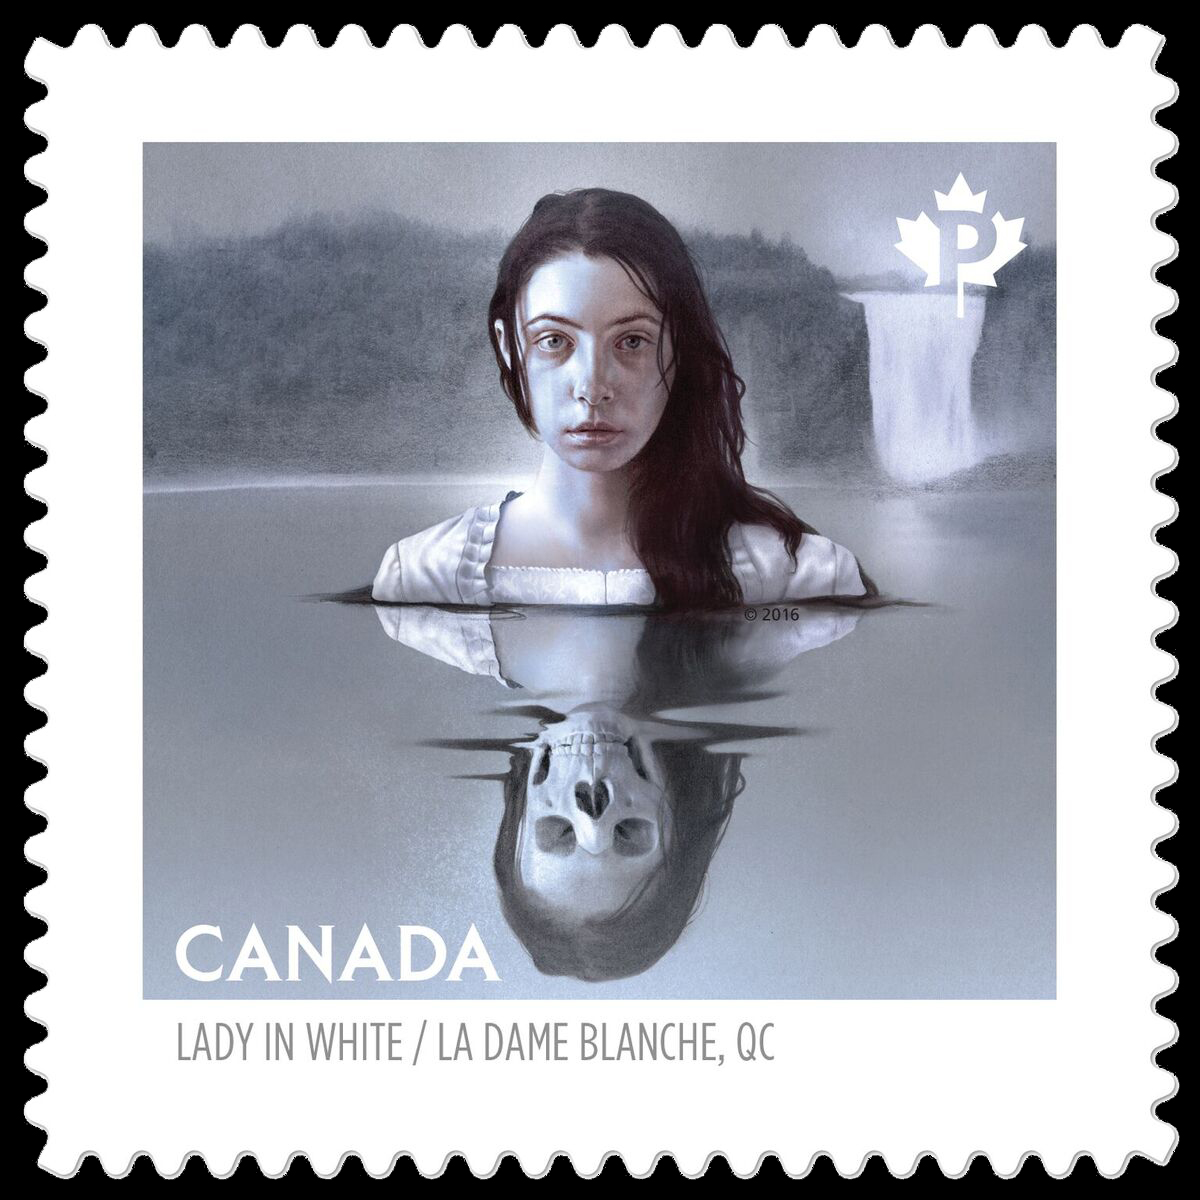 The Lady in White - Montmorency Falls, Quebec Canada Postage Stamp | Haunted Canada